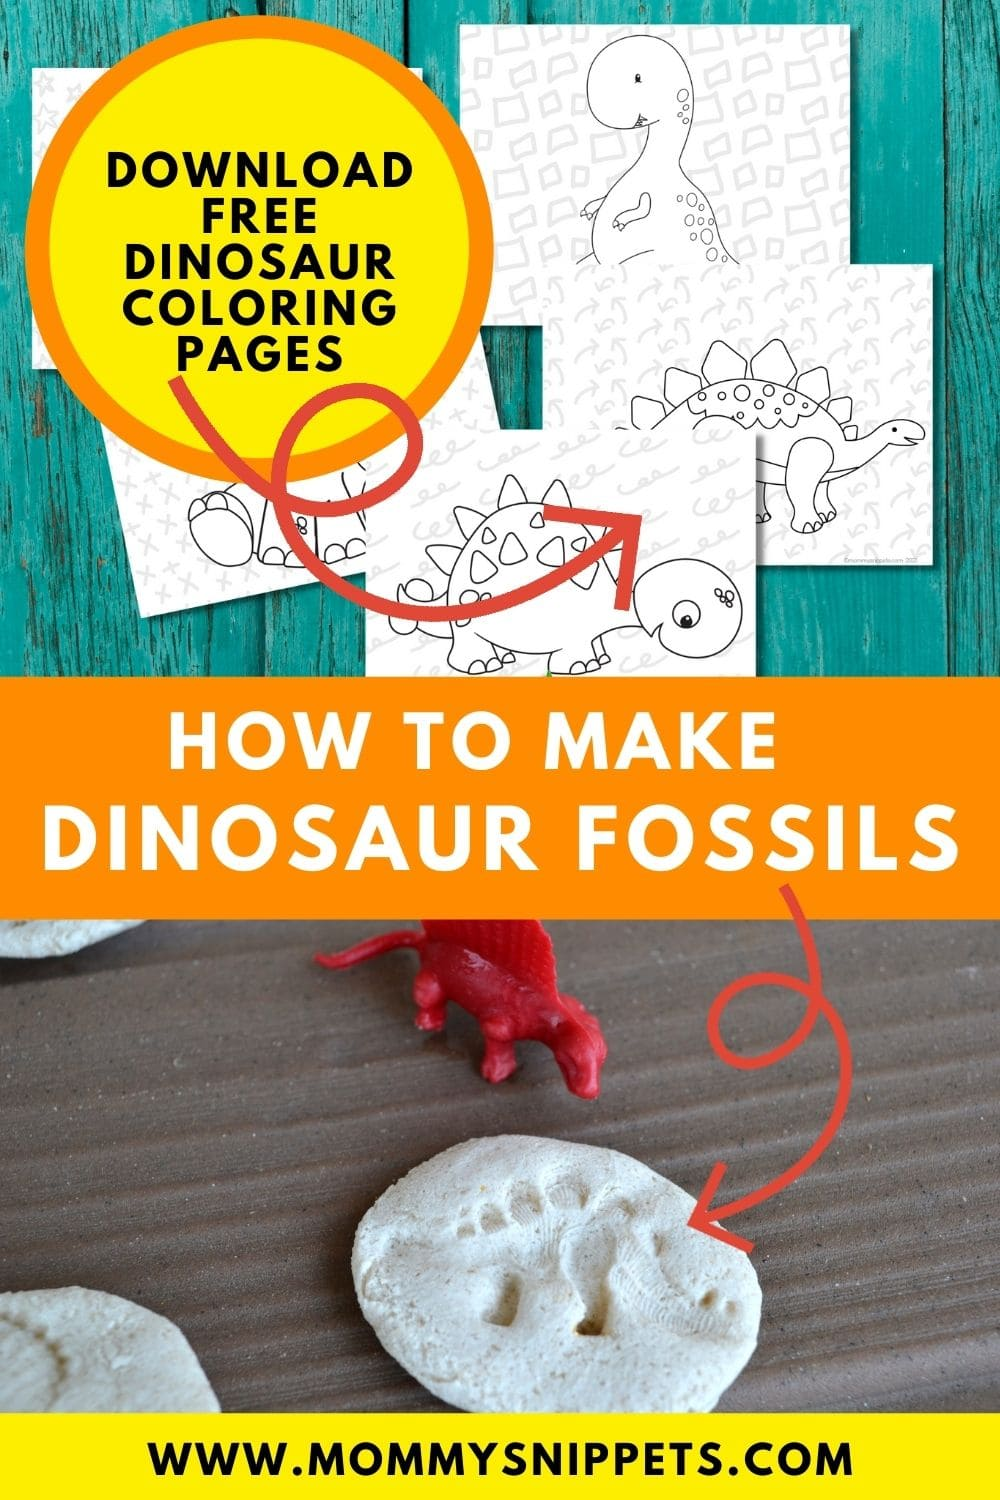 How to Make a Dinosaur Fossils Craft (+ Free Dinosaur Coloring Pages) pin